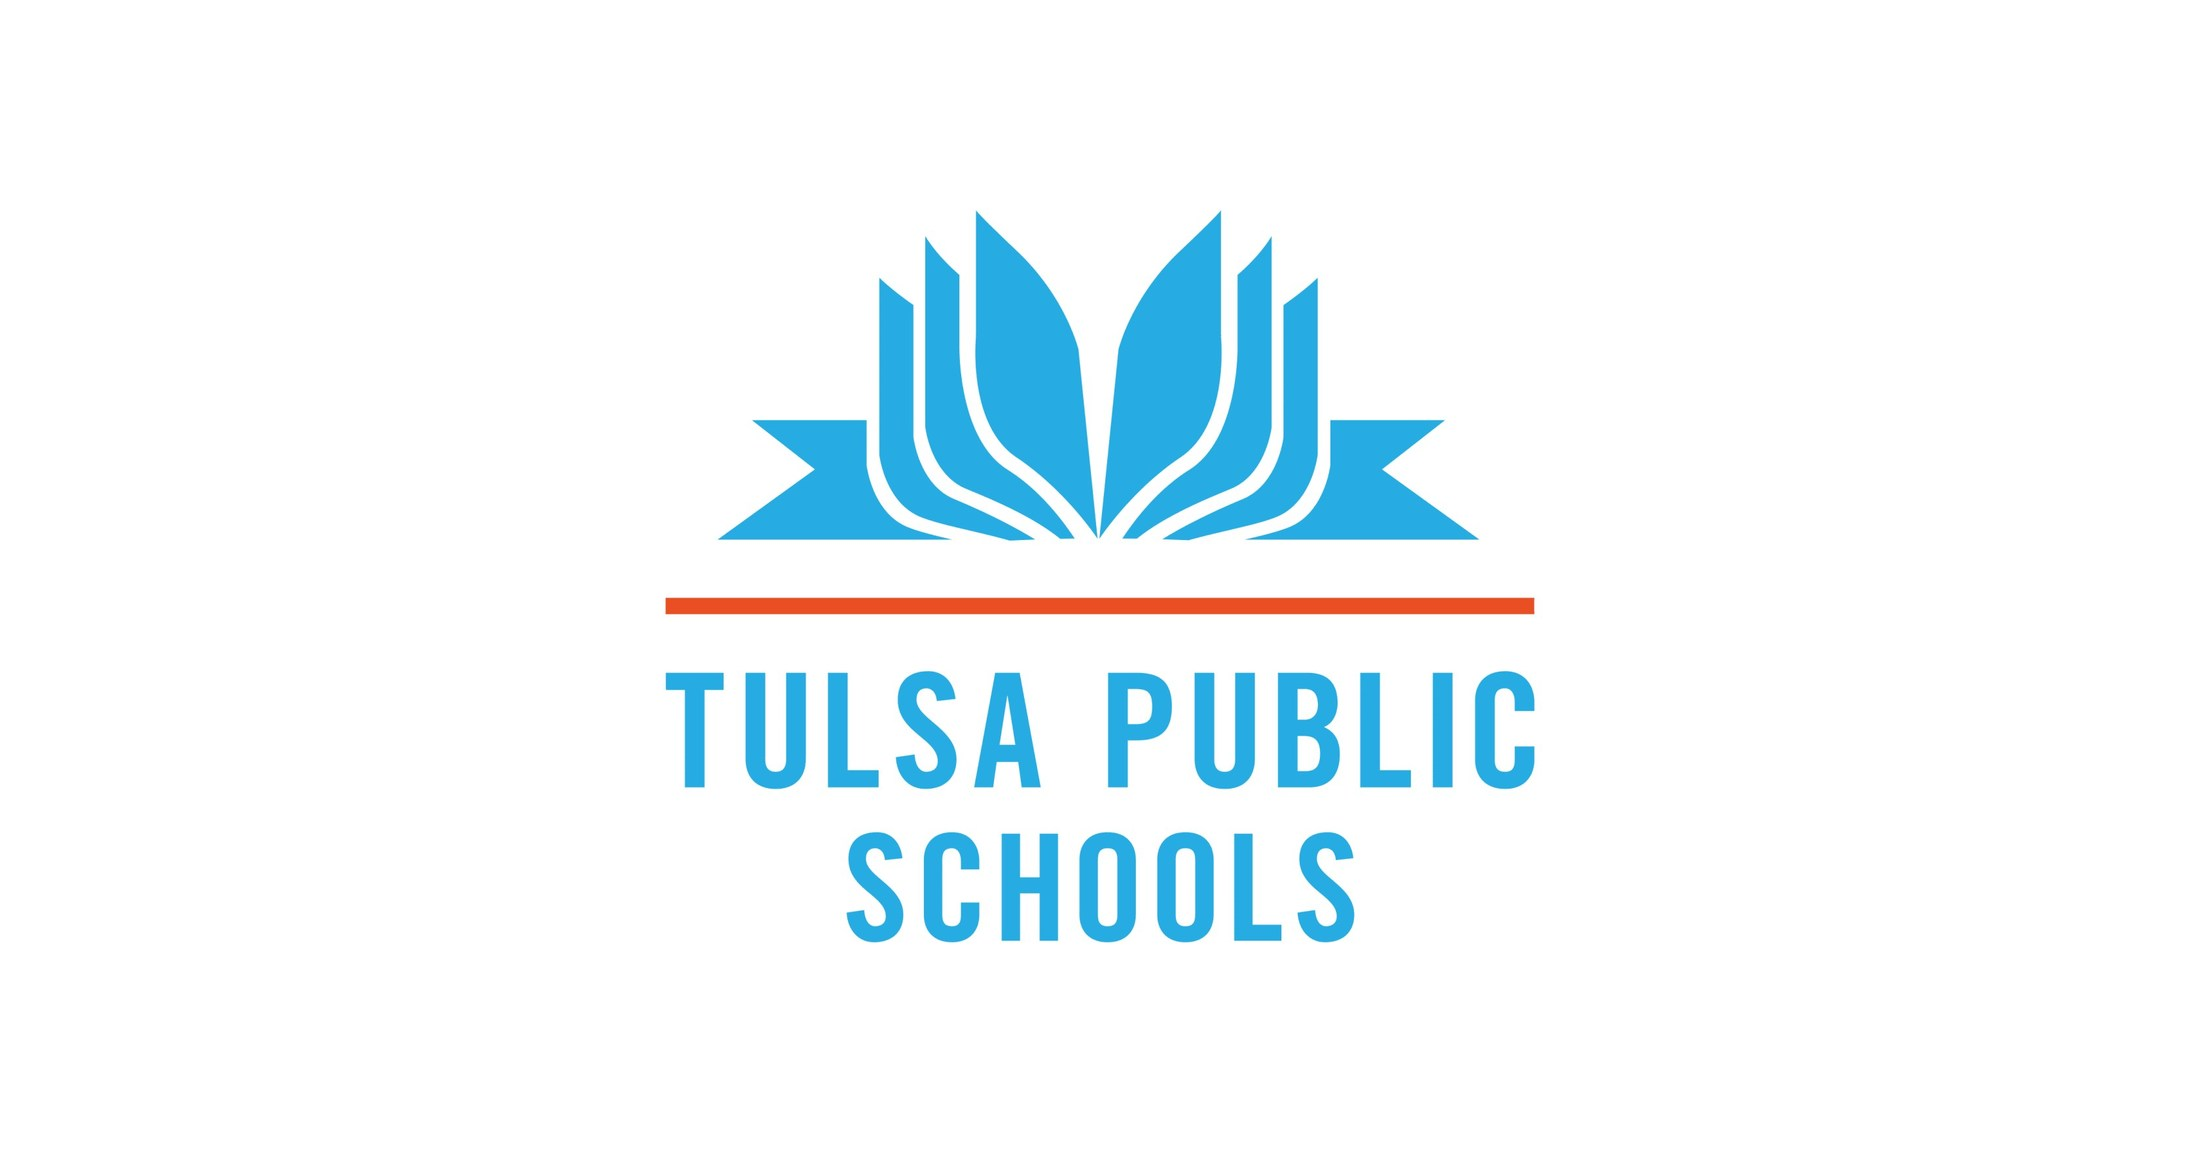 Immersive Learning with Virtual Reality from ImaginX to Transform Tulsa Public School, Nathan Hale High School